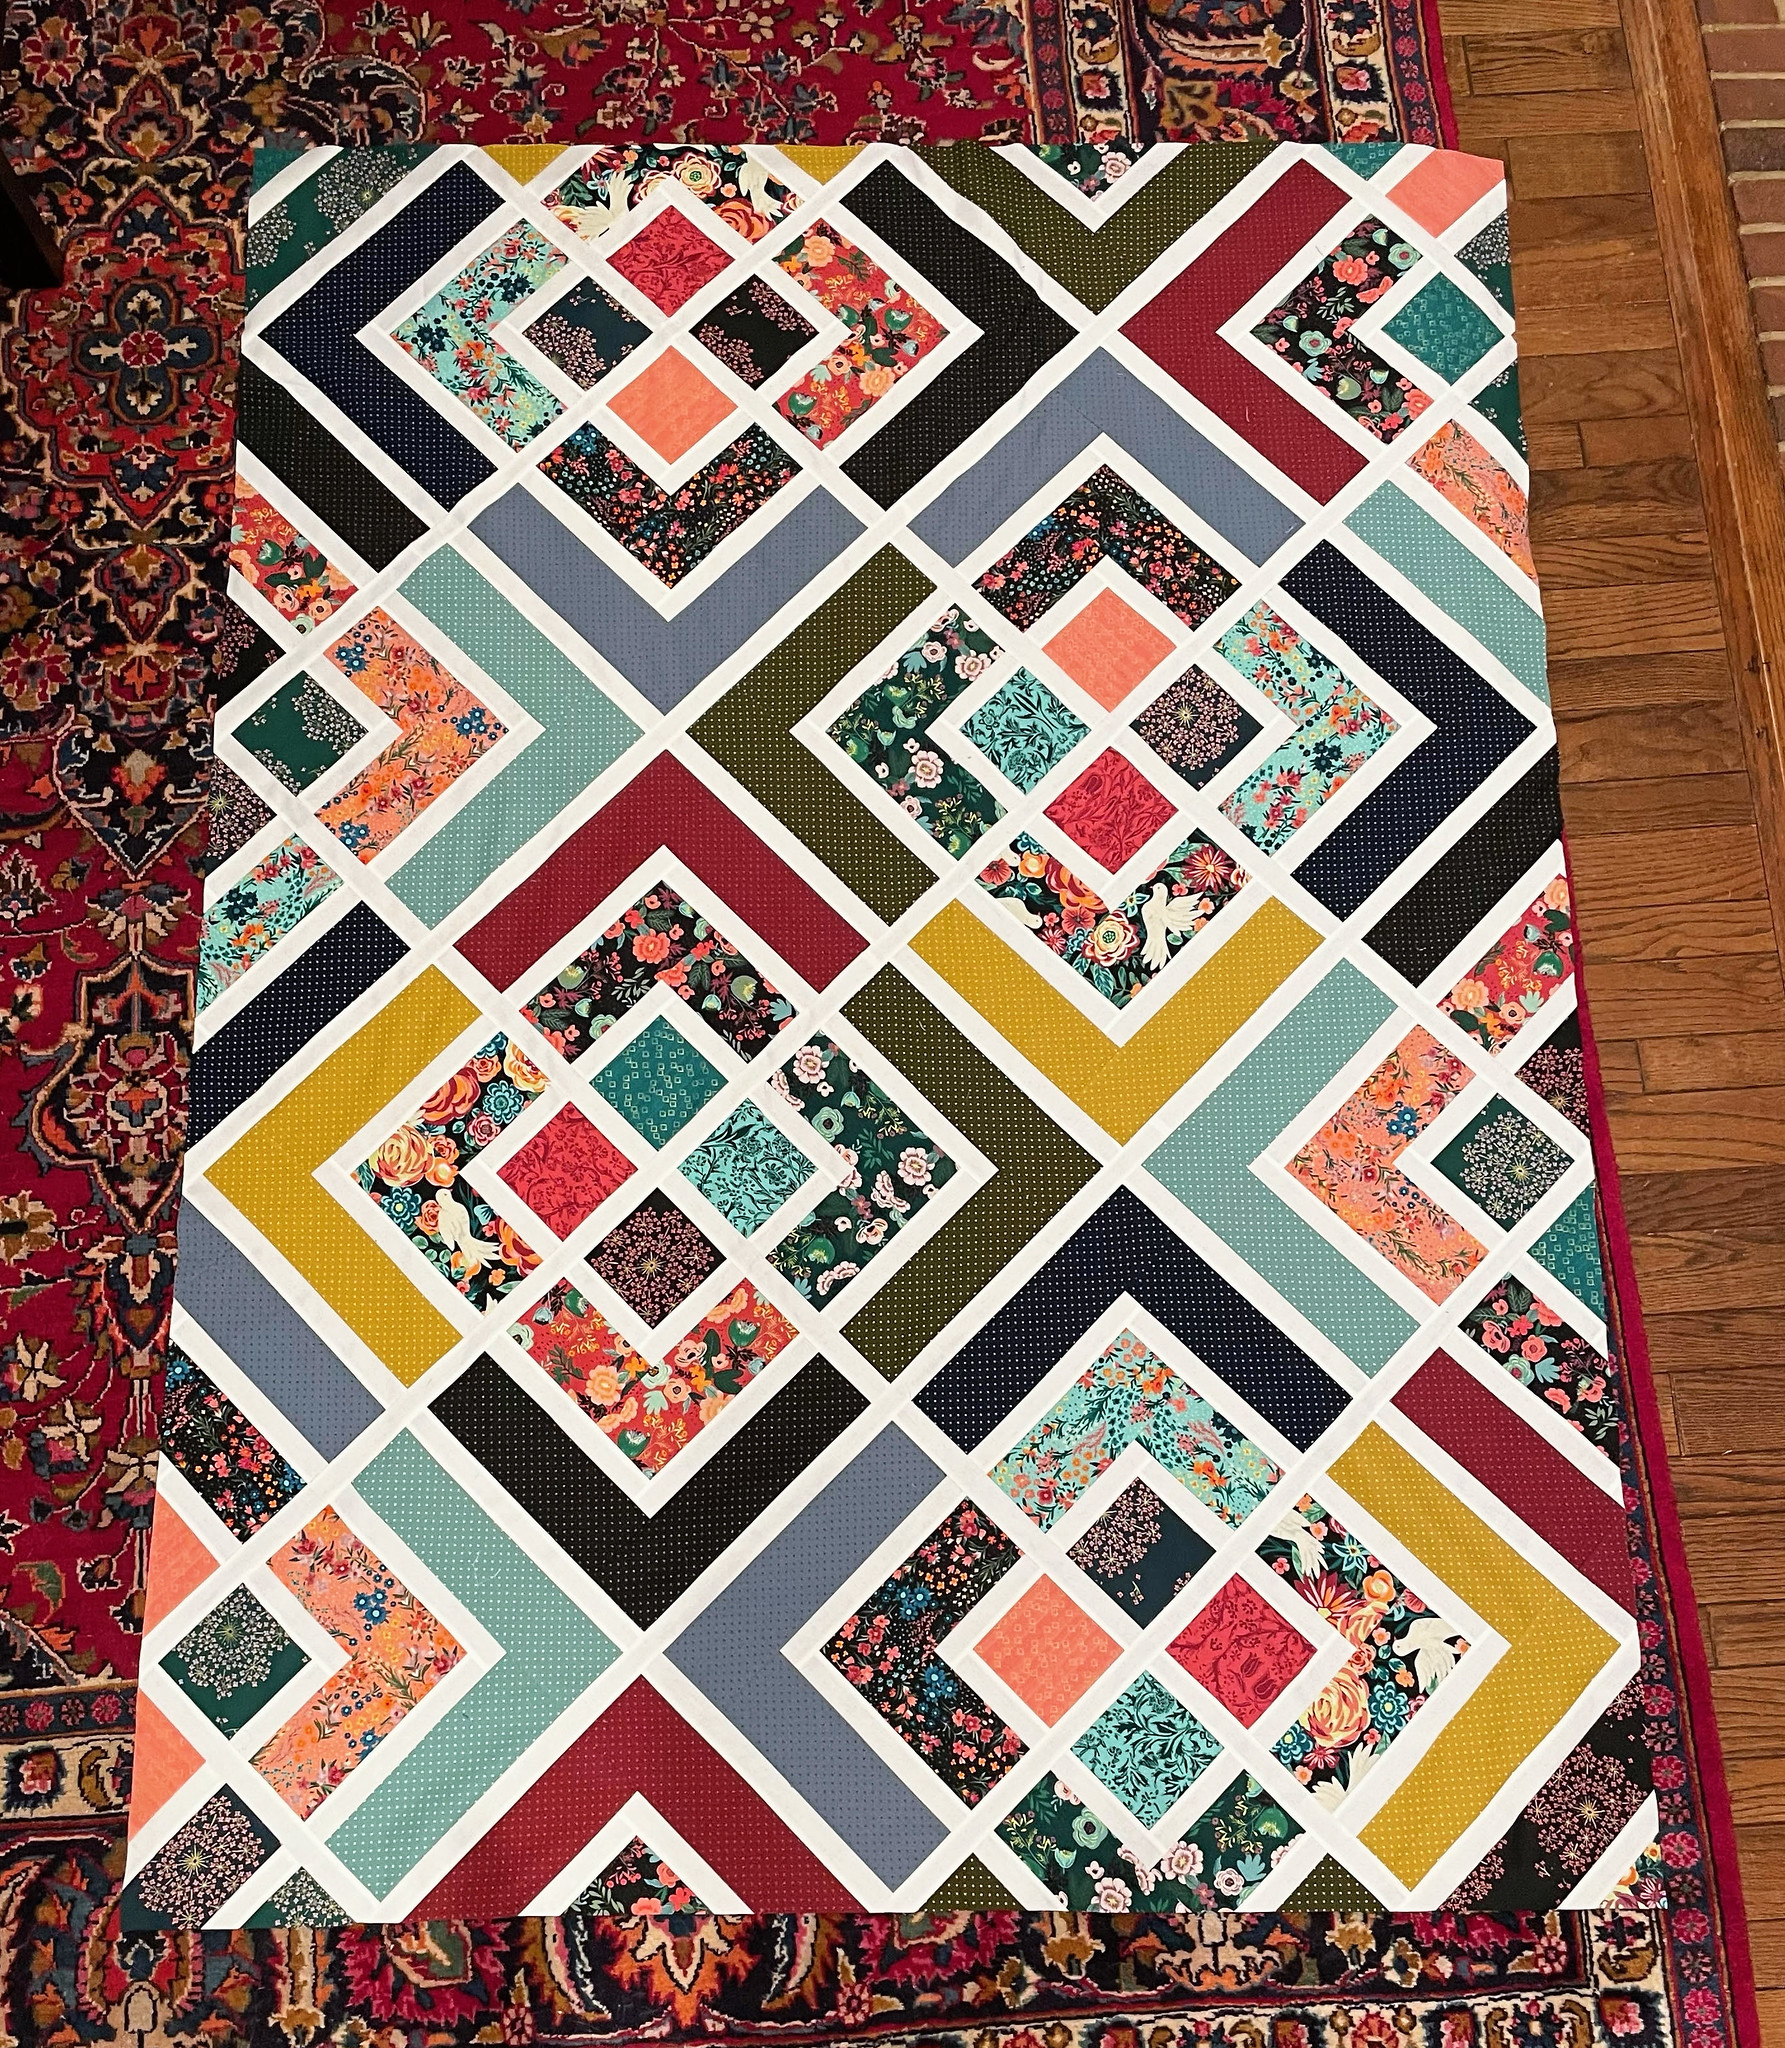 Shannon's Penny Quilt